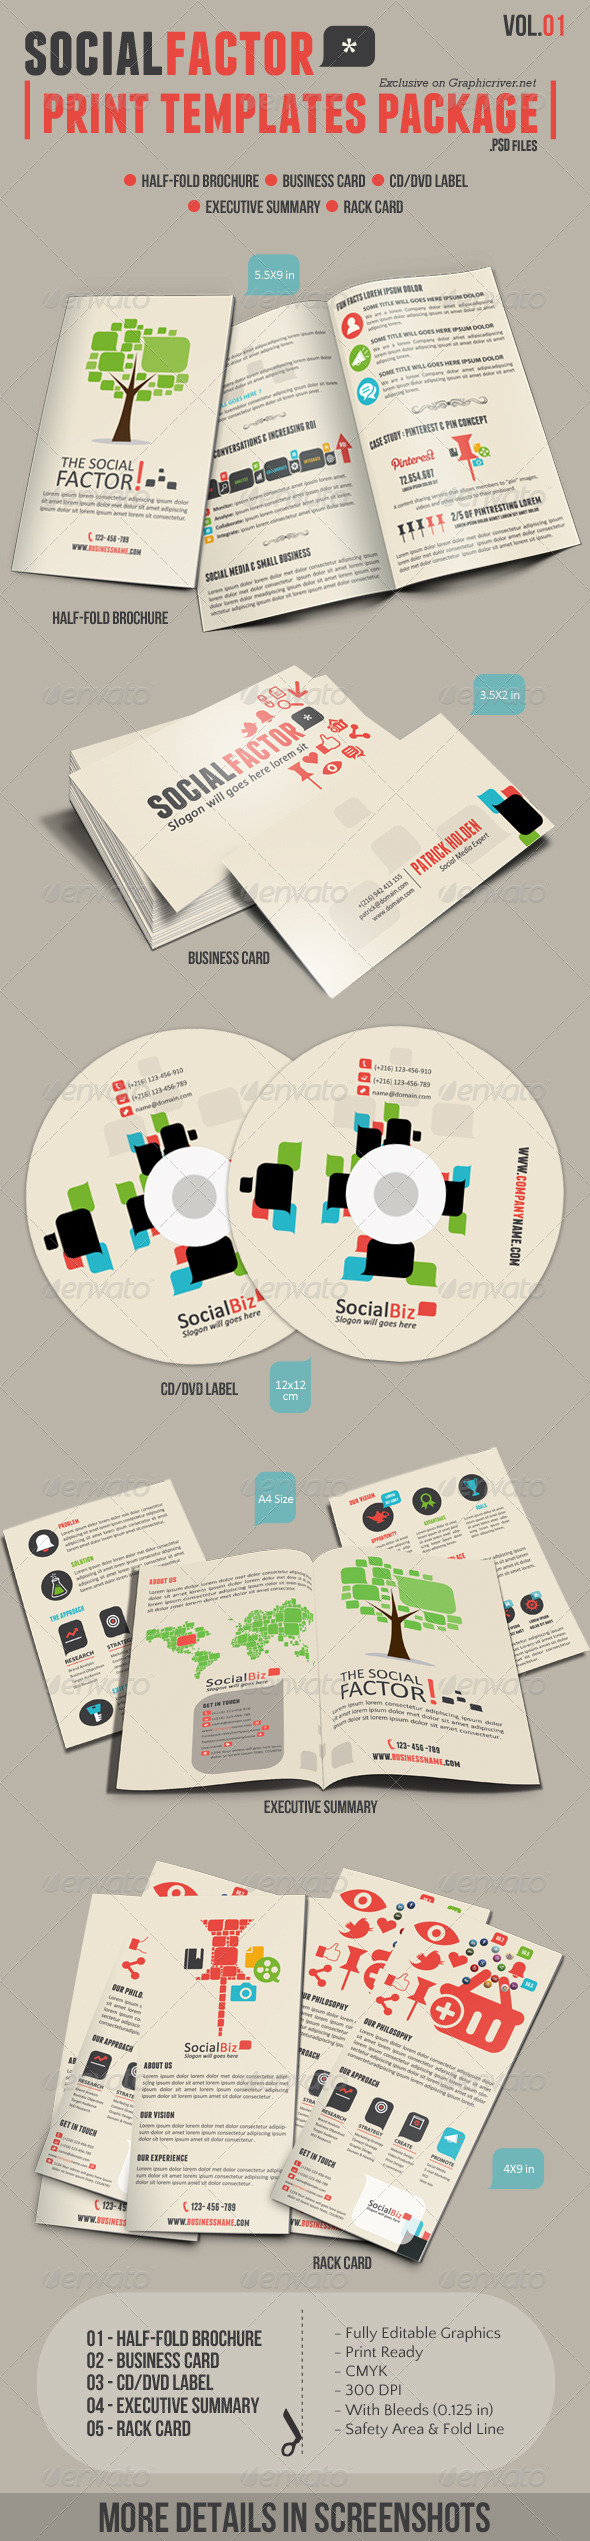 GraphicRiver SocialFactor Print Templates Package Vol.01 2698256